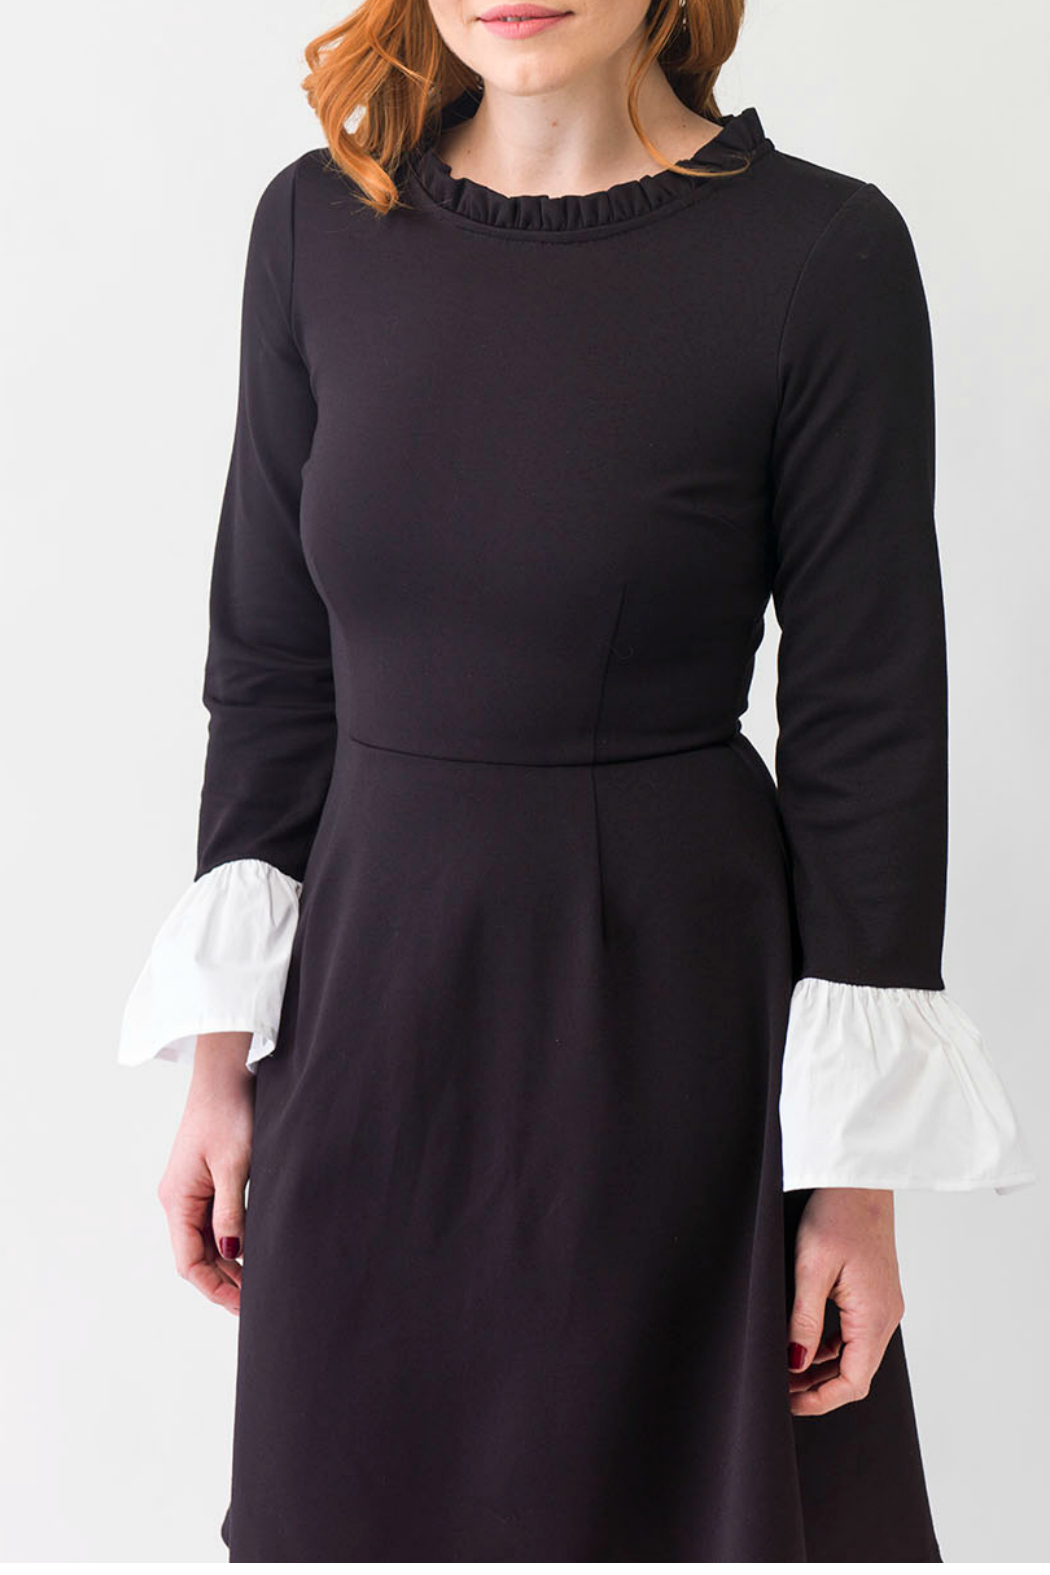 Smak Parlour Black and white dress - Front Full Image